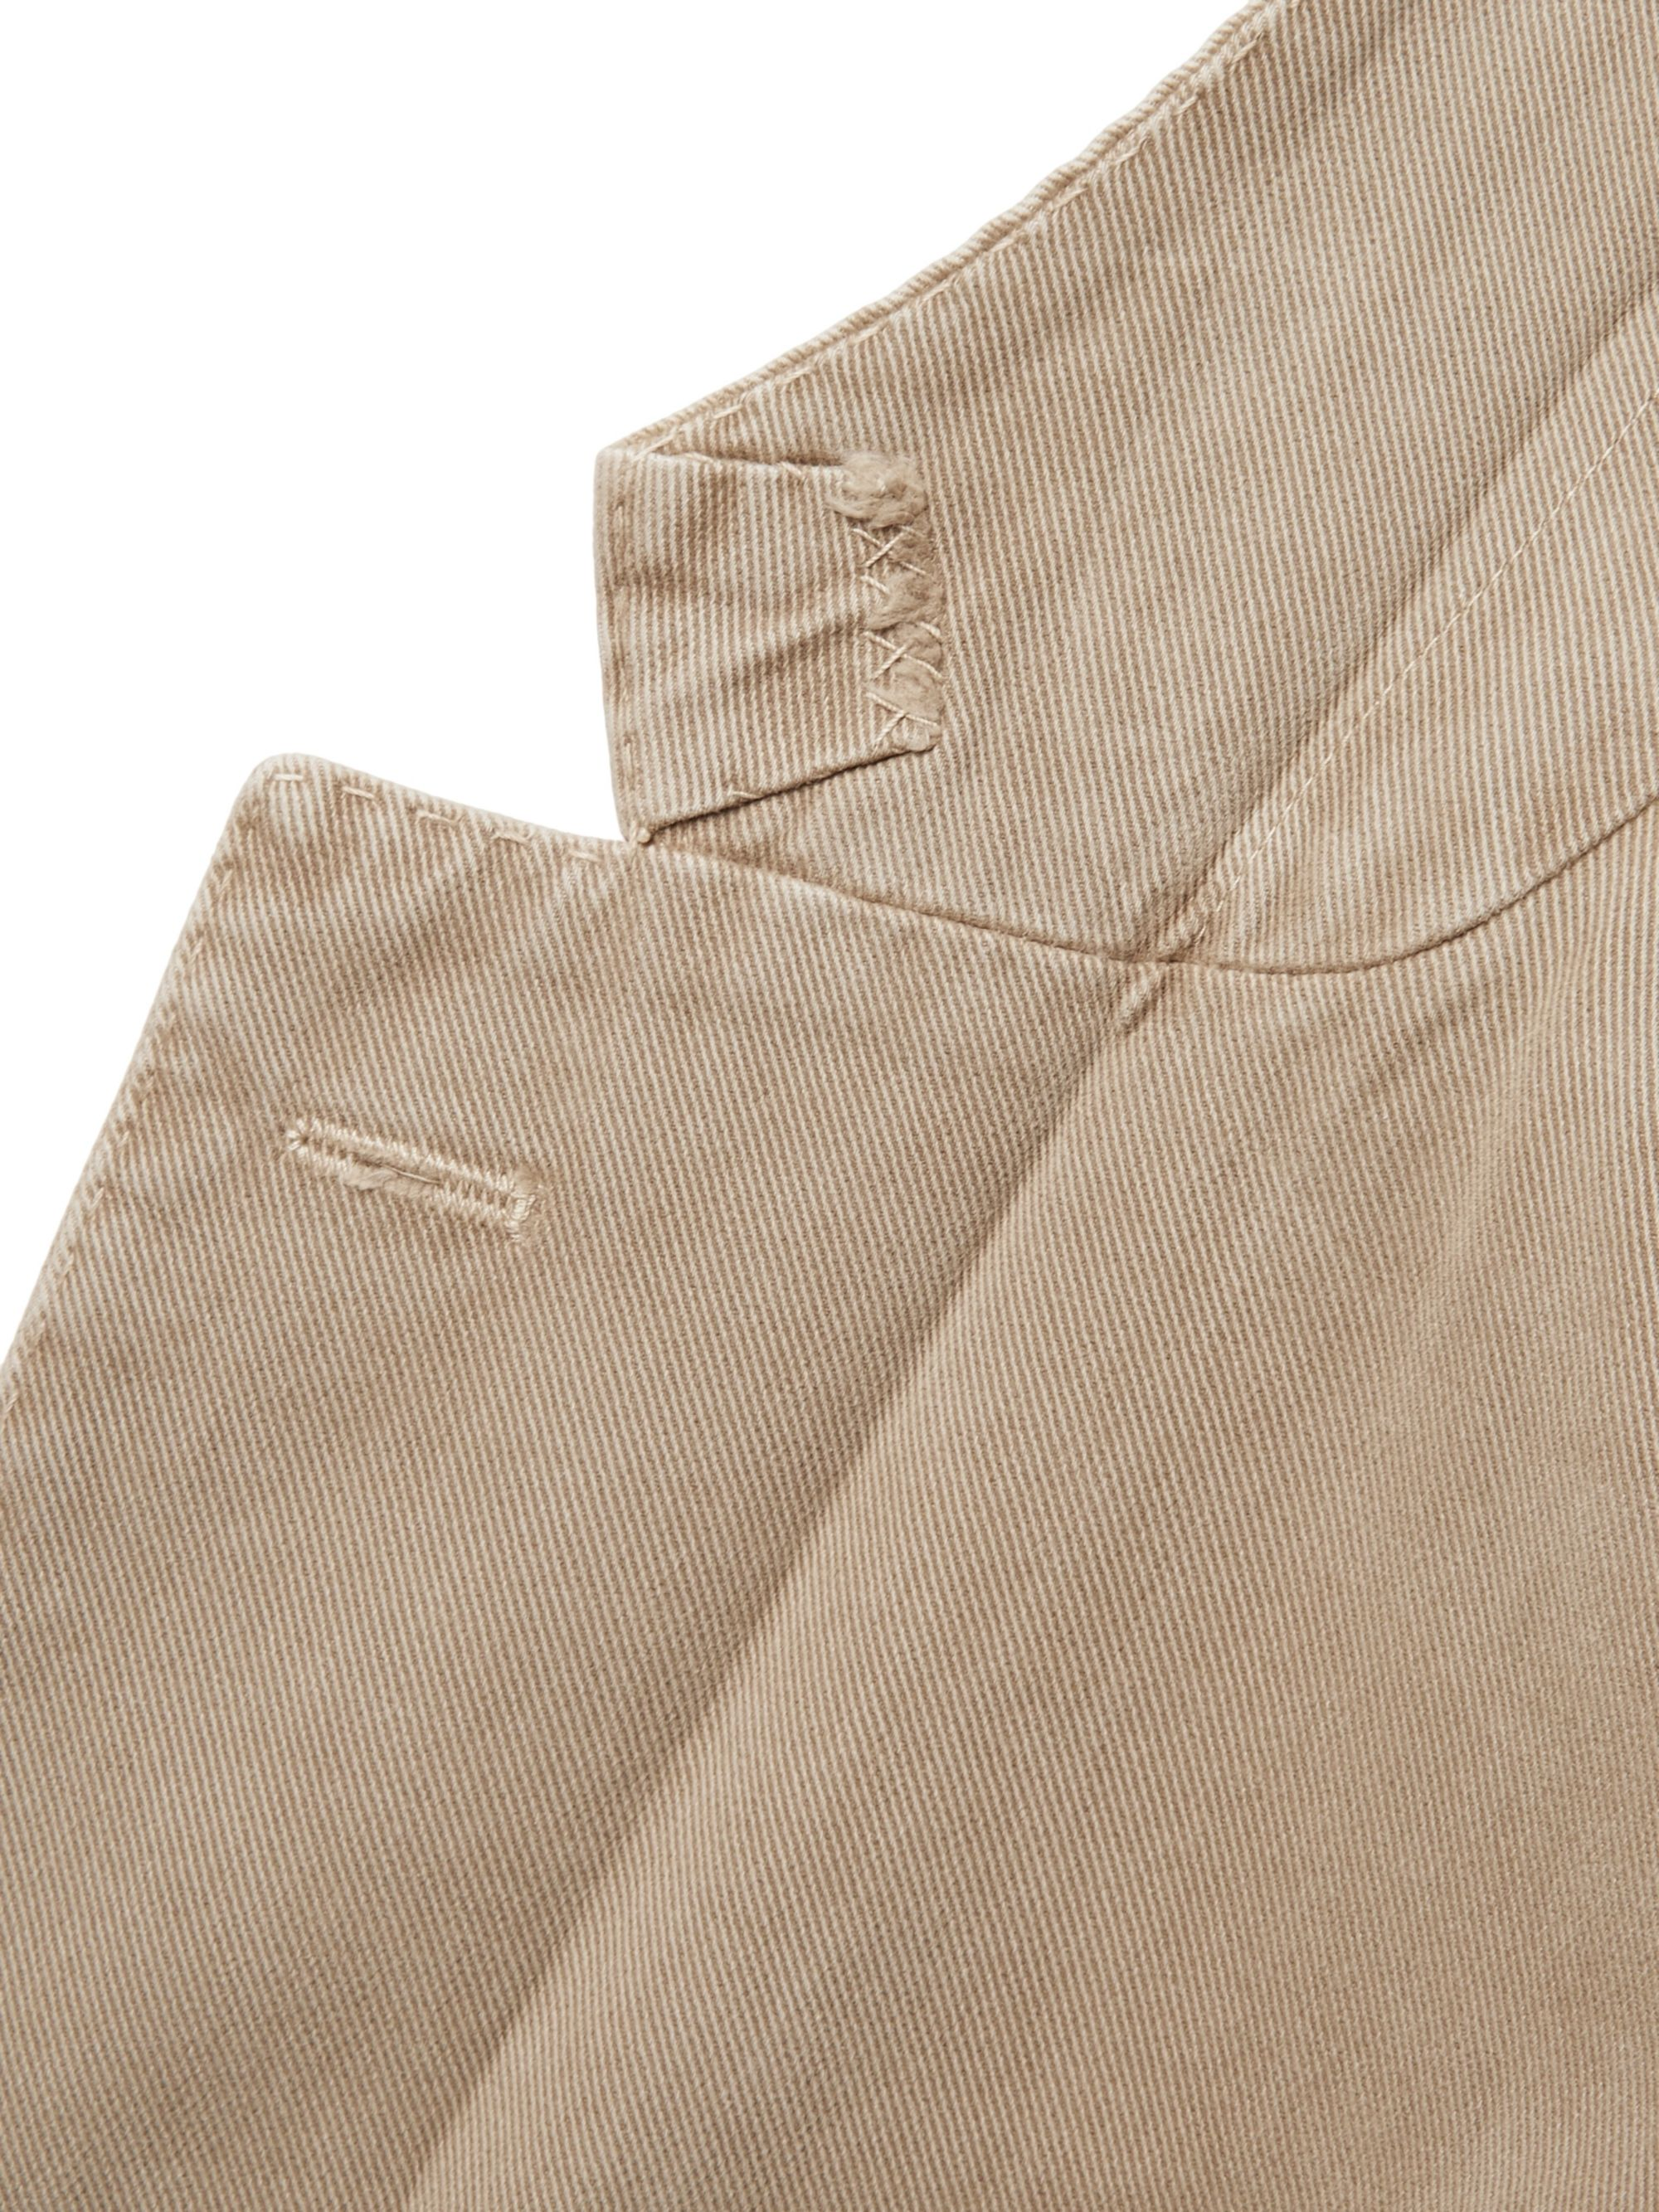 Incotex Beige Garment-Dyed Cotton and Cashmere-Blend Twill Blazer